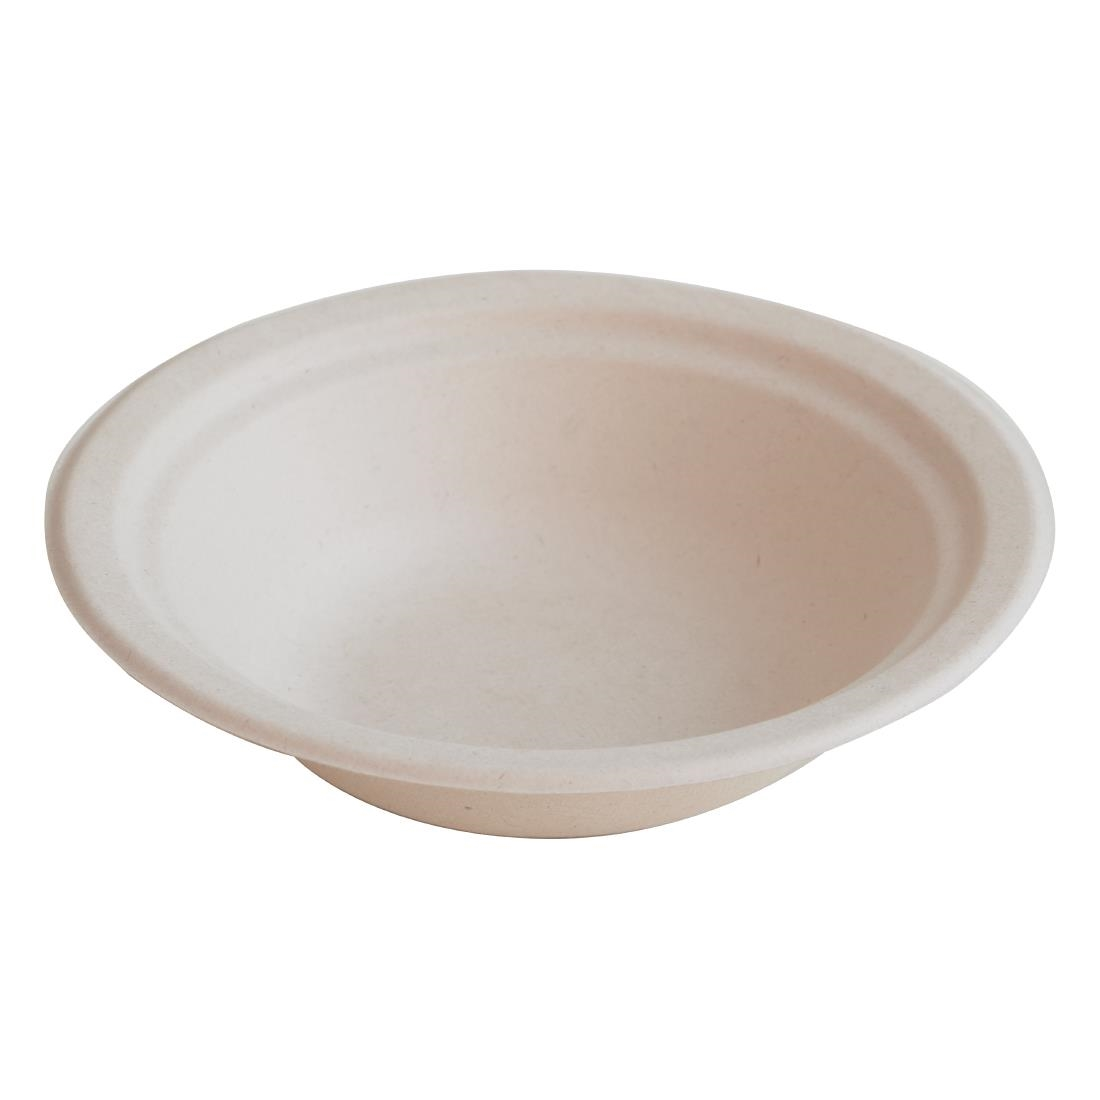 Image of eGreen Eco-Fibre Compostable Wheat Bowls 400ml (Pack of 1000) Pack of 1000